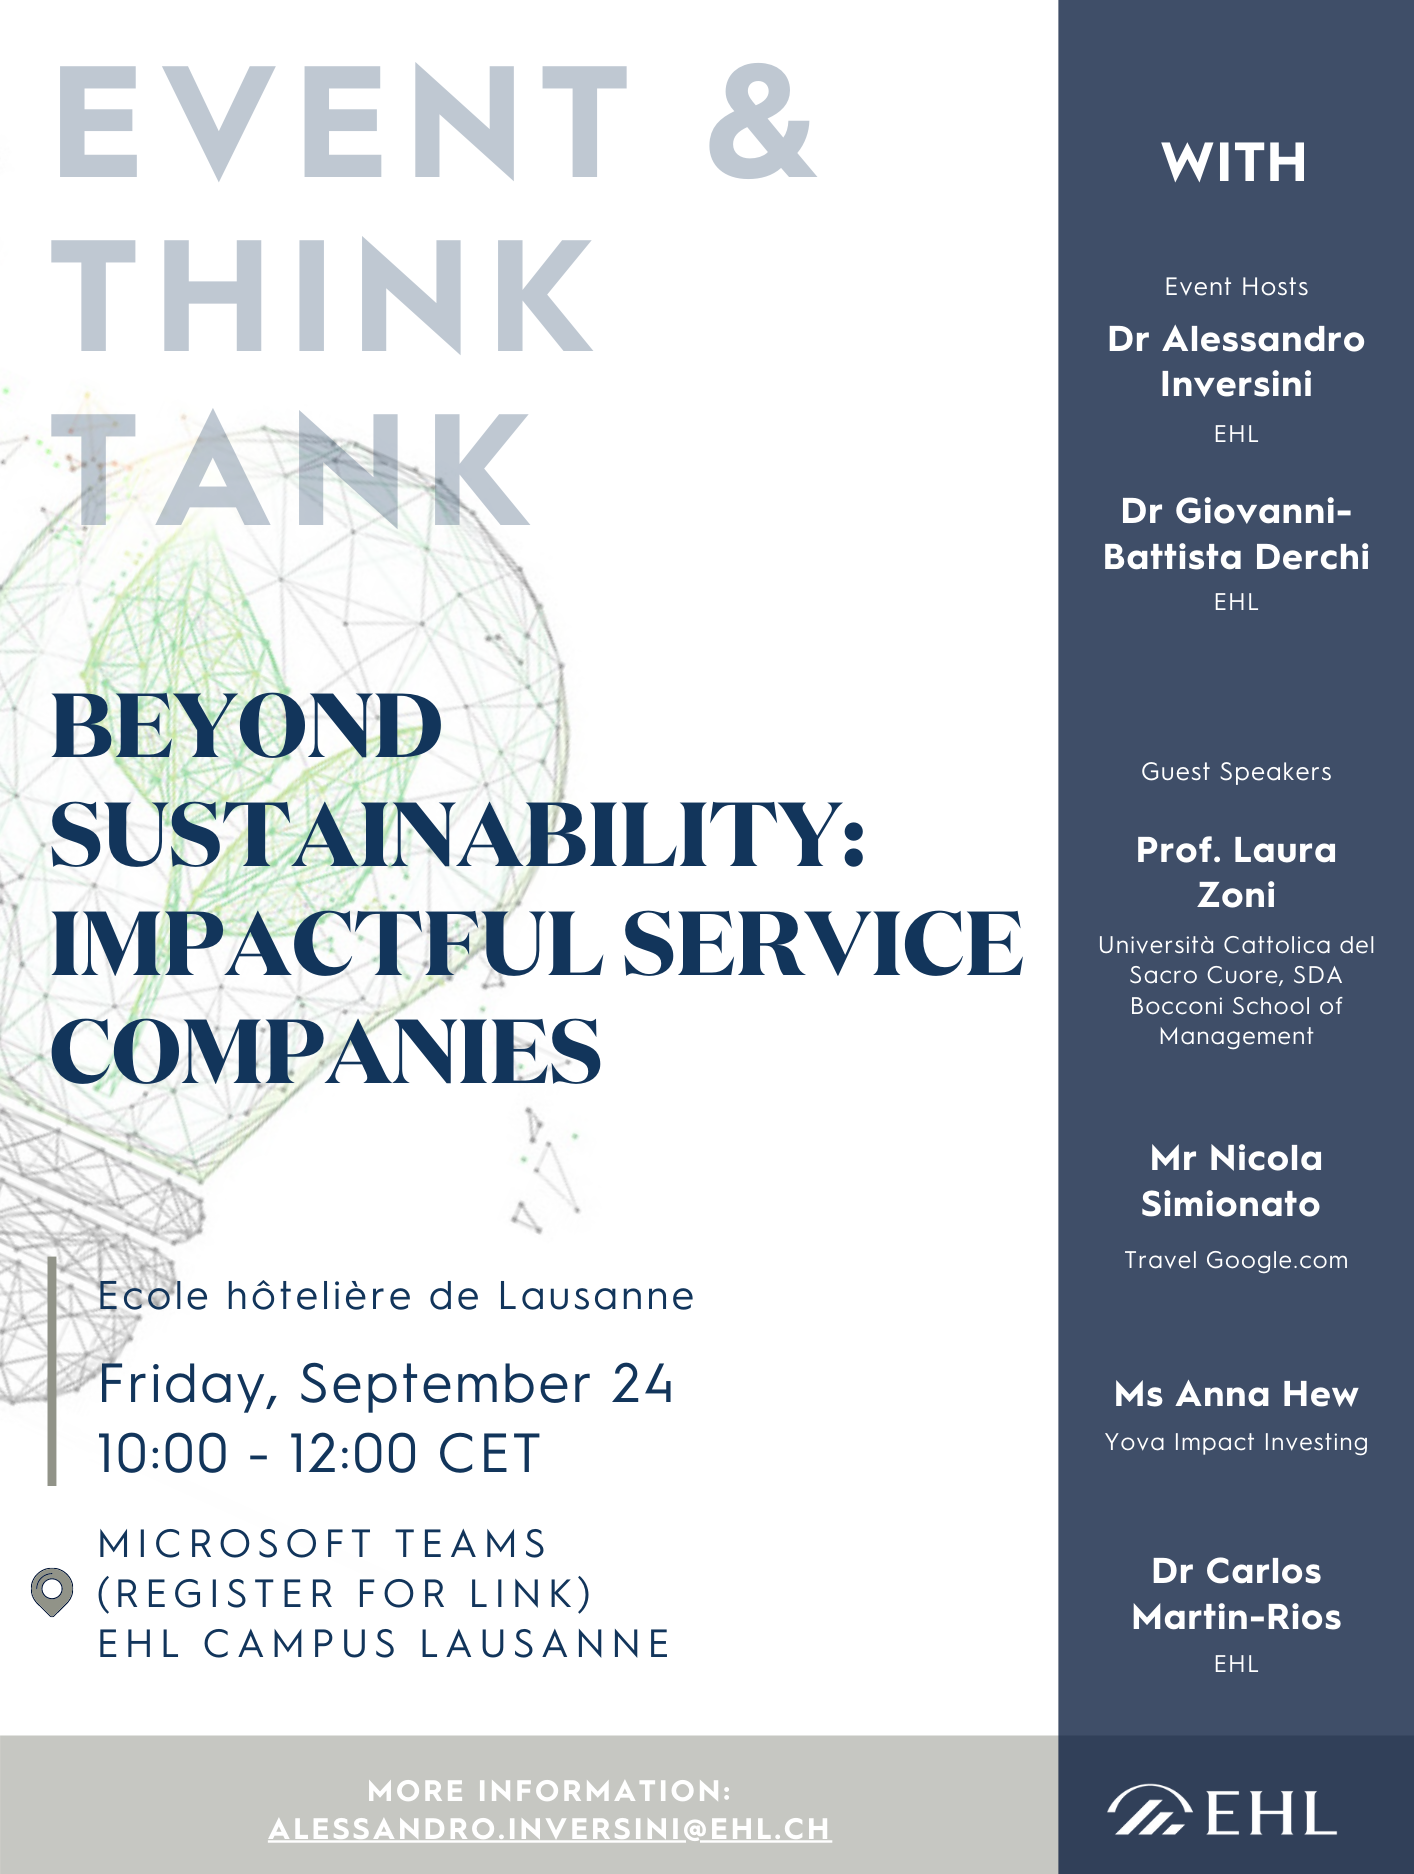 [POSTER] Beyond sustainability Impactful Service Companies